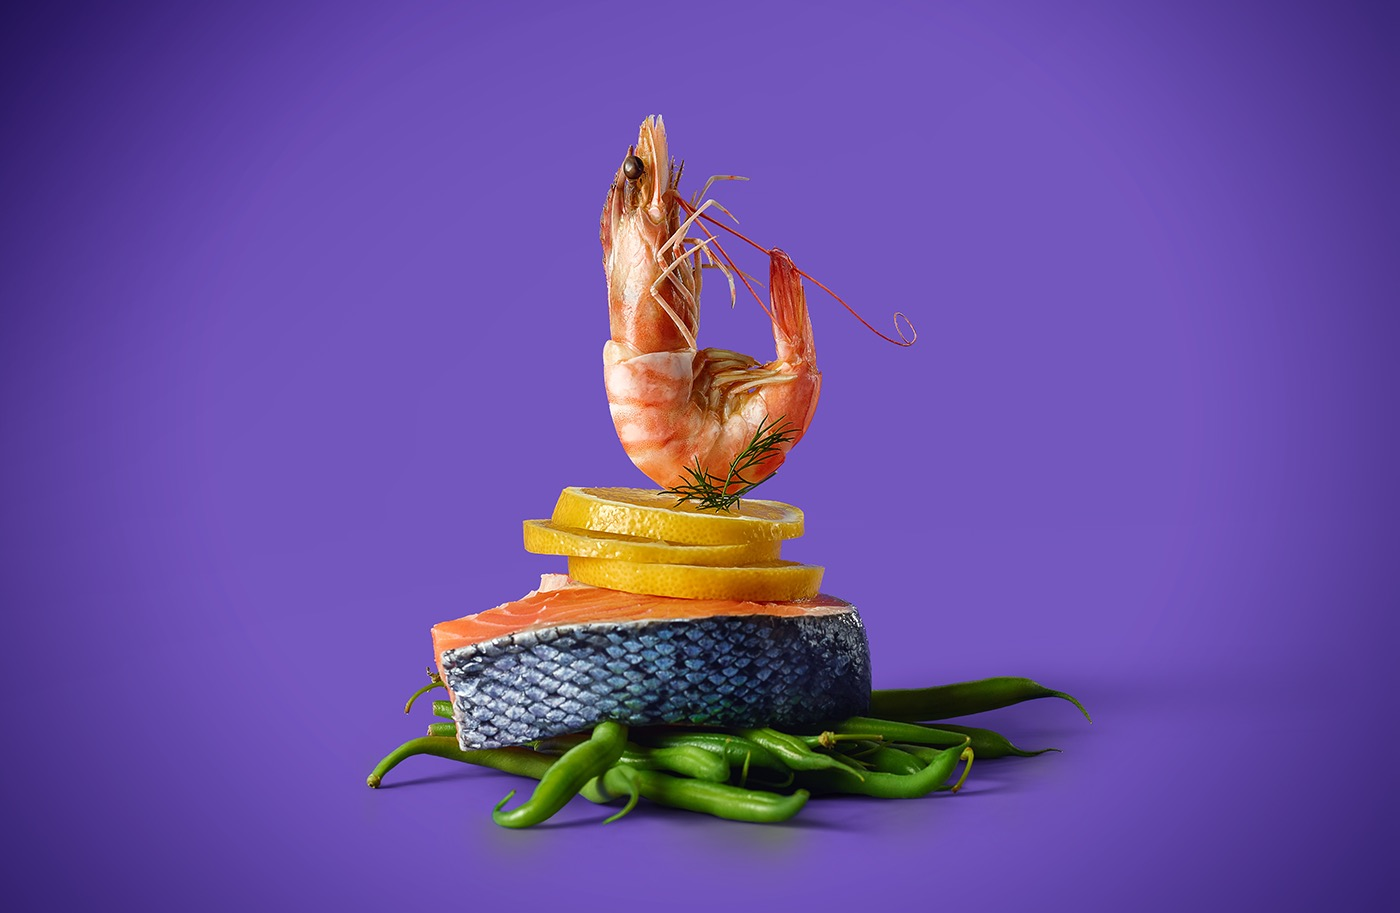 Food Photography & Retouching Ideas For Inspiration (10)